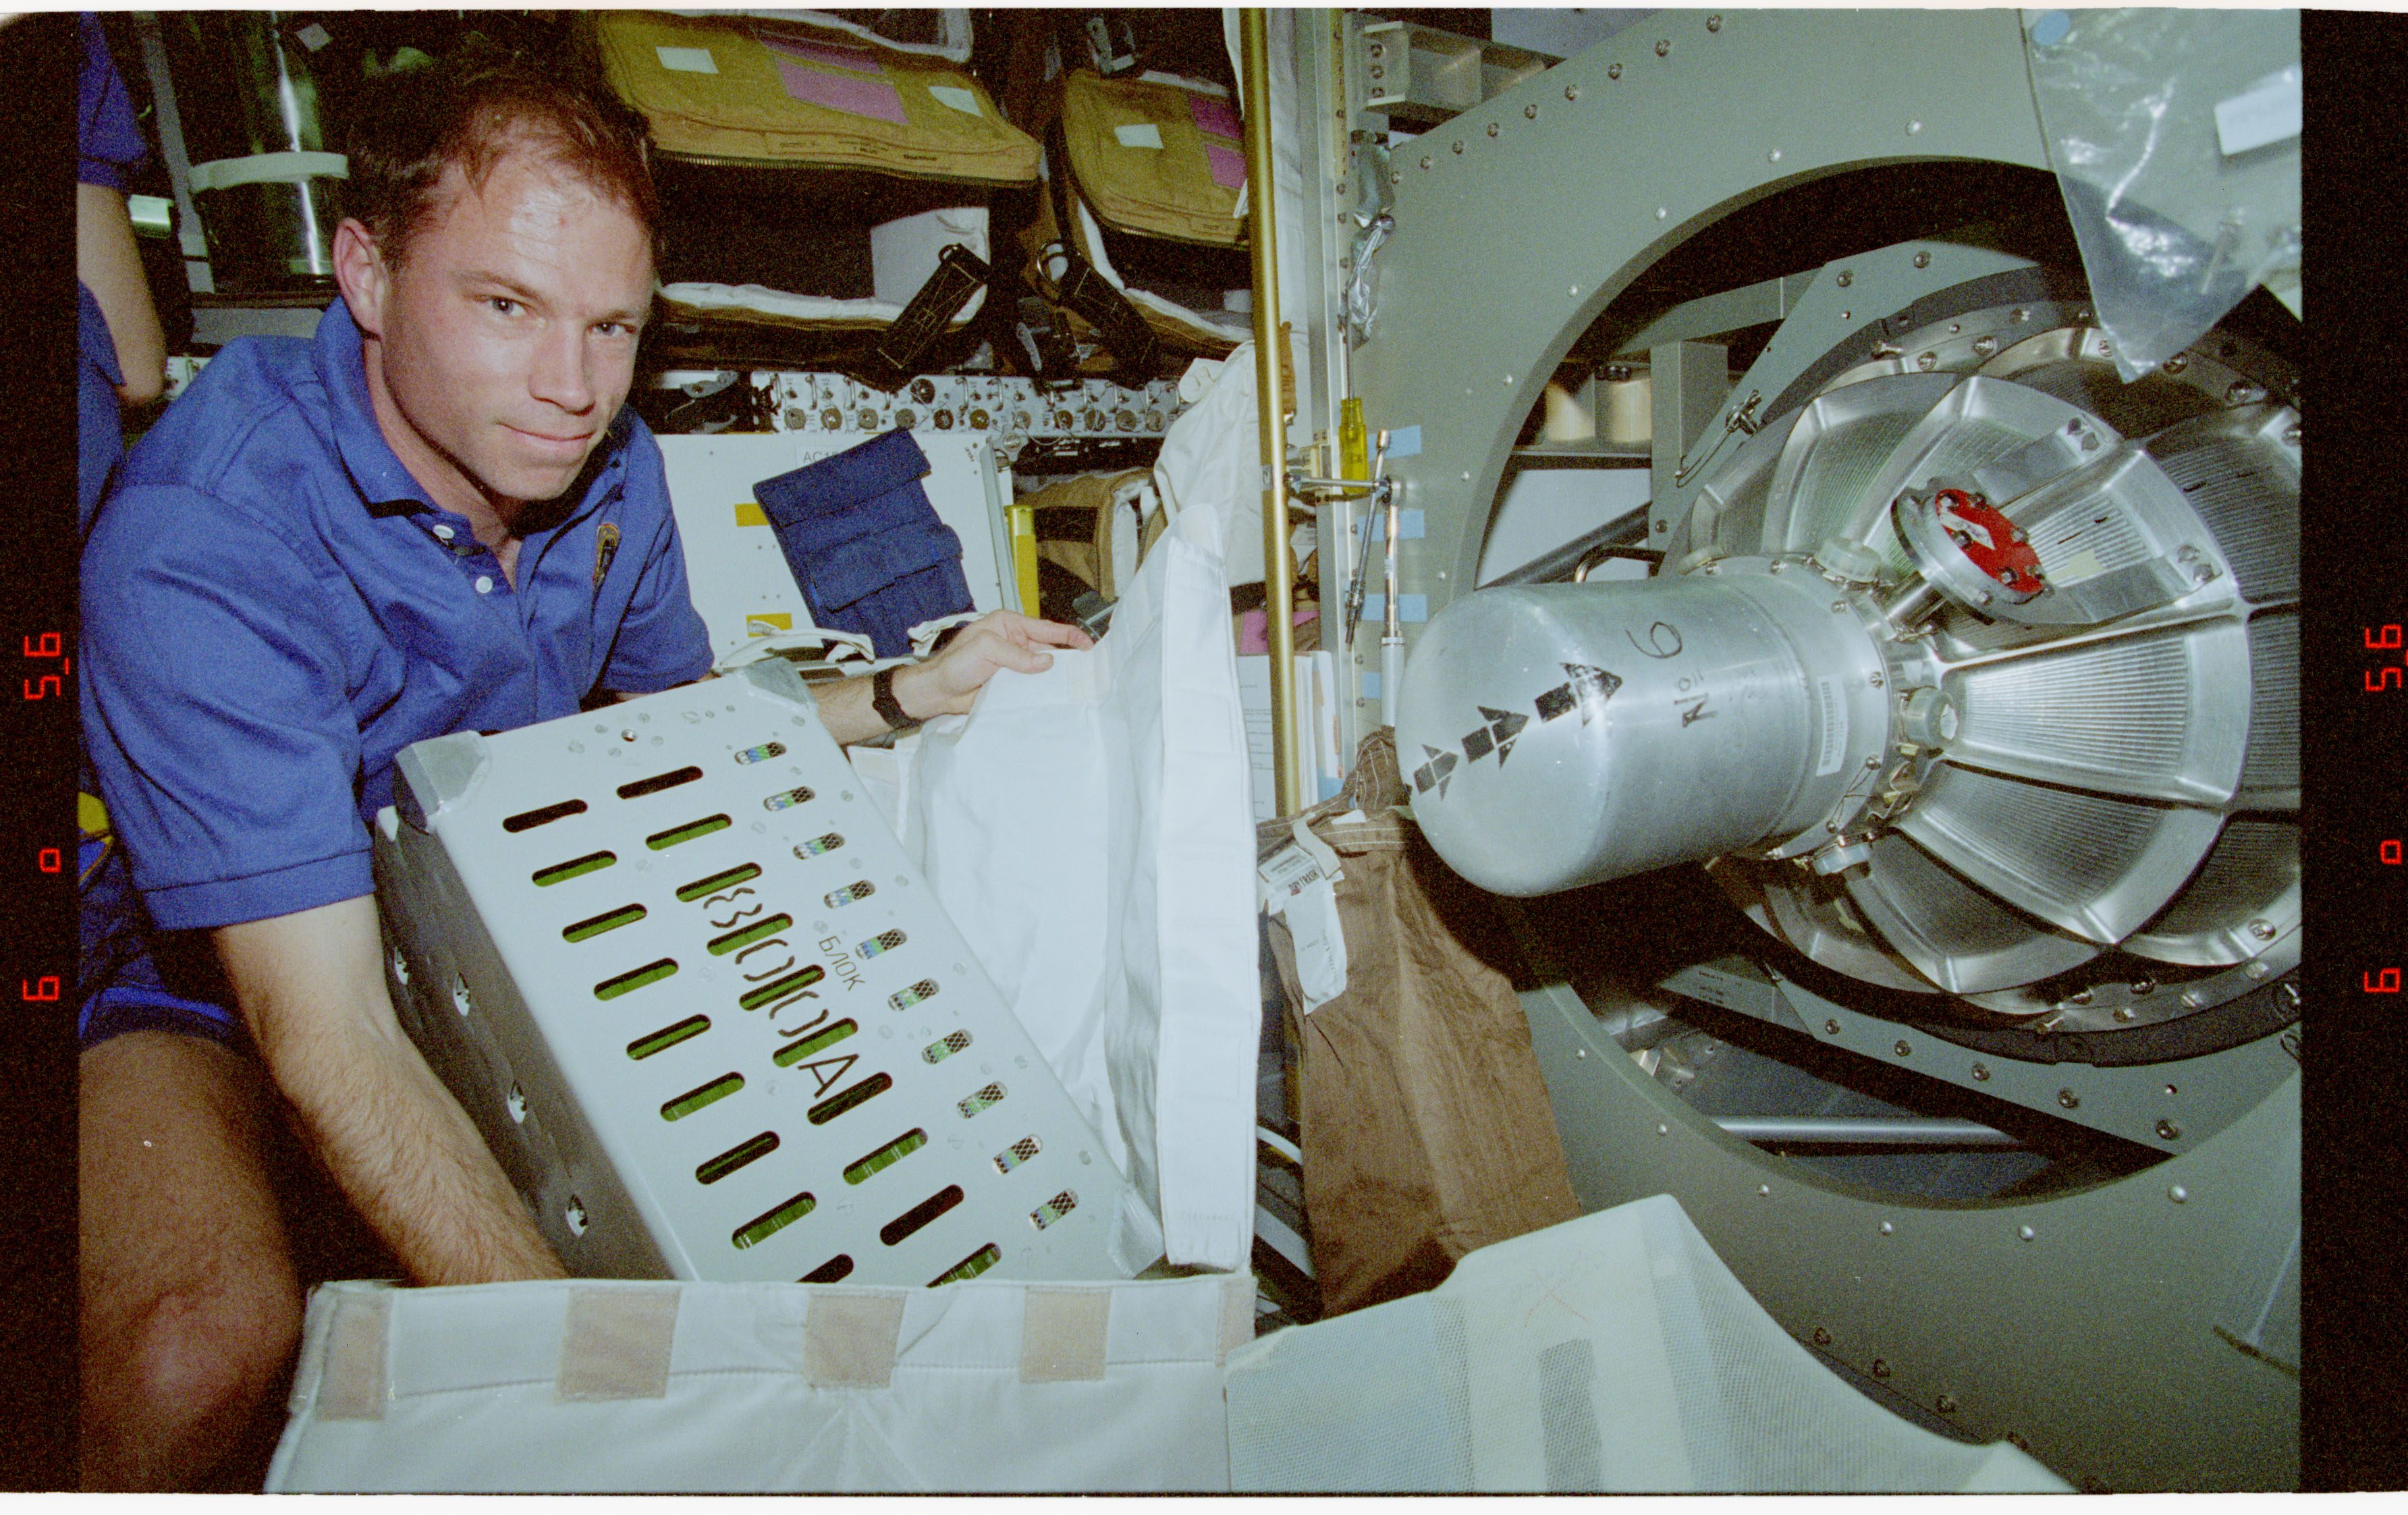 STS076-345-019 - STS-076 - Documentation of logistics transfer from shuttle Spacehab